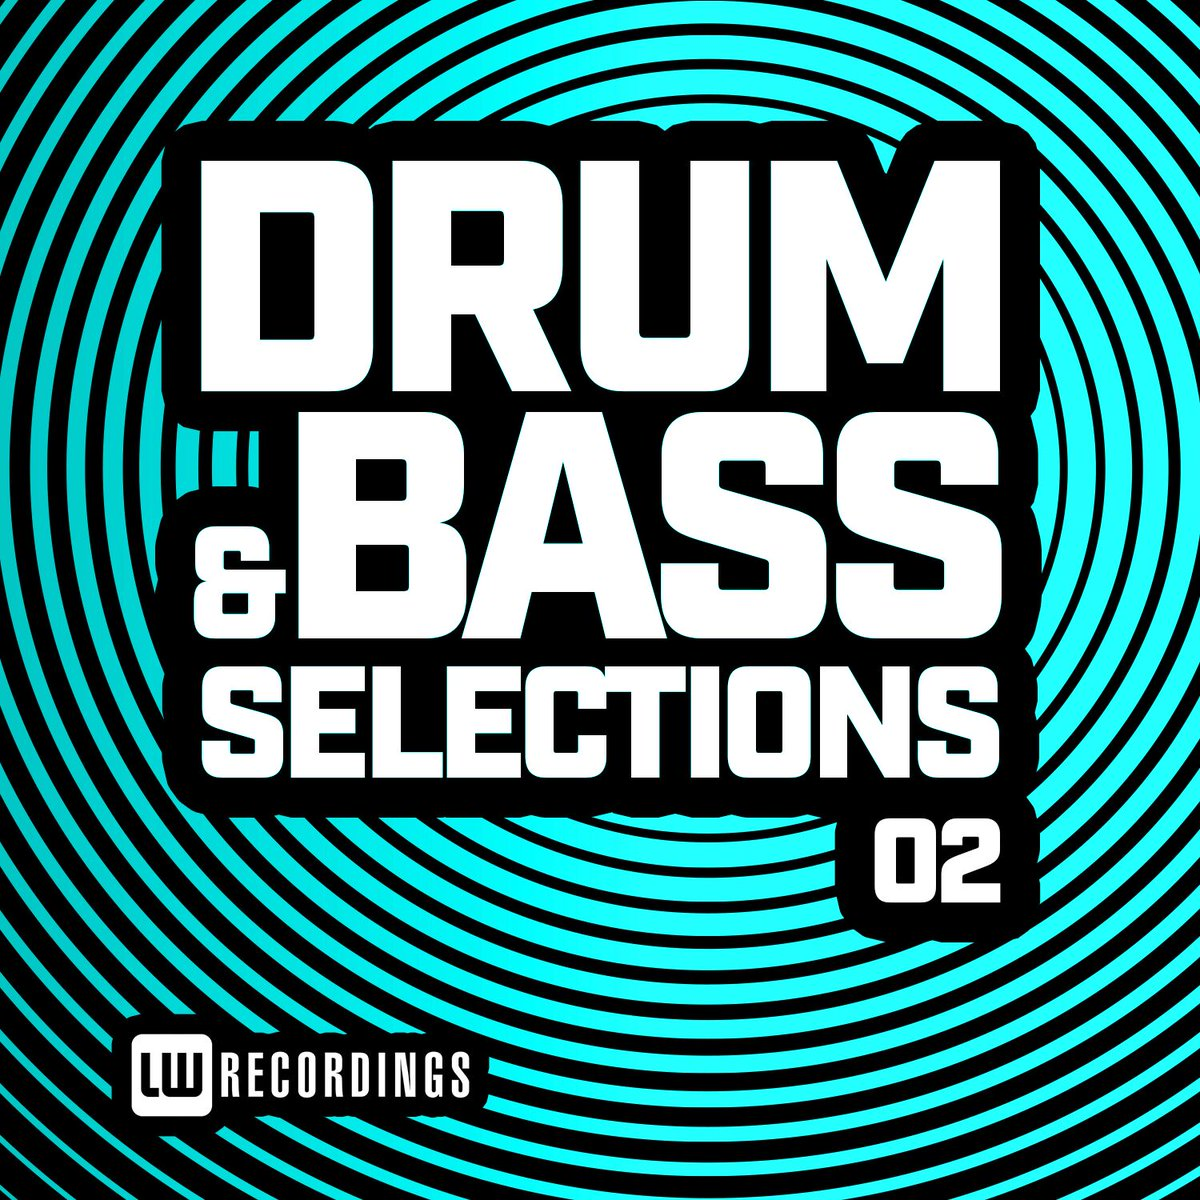 A dose of Drum N Bass... Selected just for you!  Drum & Bass Selections, Vol 02  Buy/Stream NOW!! https://bit.ly/2HA48CI  Including:  @Theisizzle  @Galvatron54  @Ghosty_promo  & many more • #drumnbass #drumnbass #bassselections  #basslinedrop #drumnbassplaylist #LWRecordingspic.twitter.com/I7cXbMCKoc